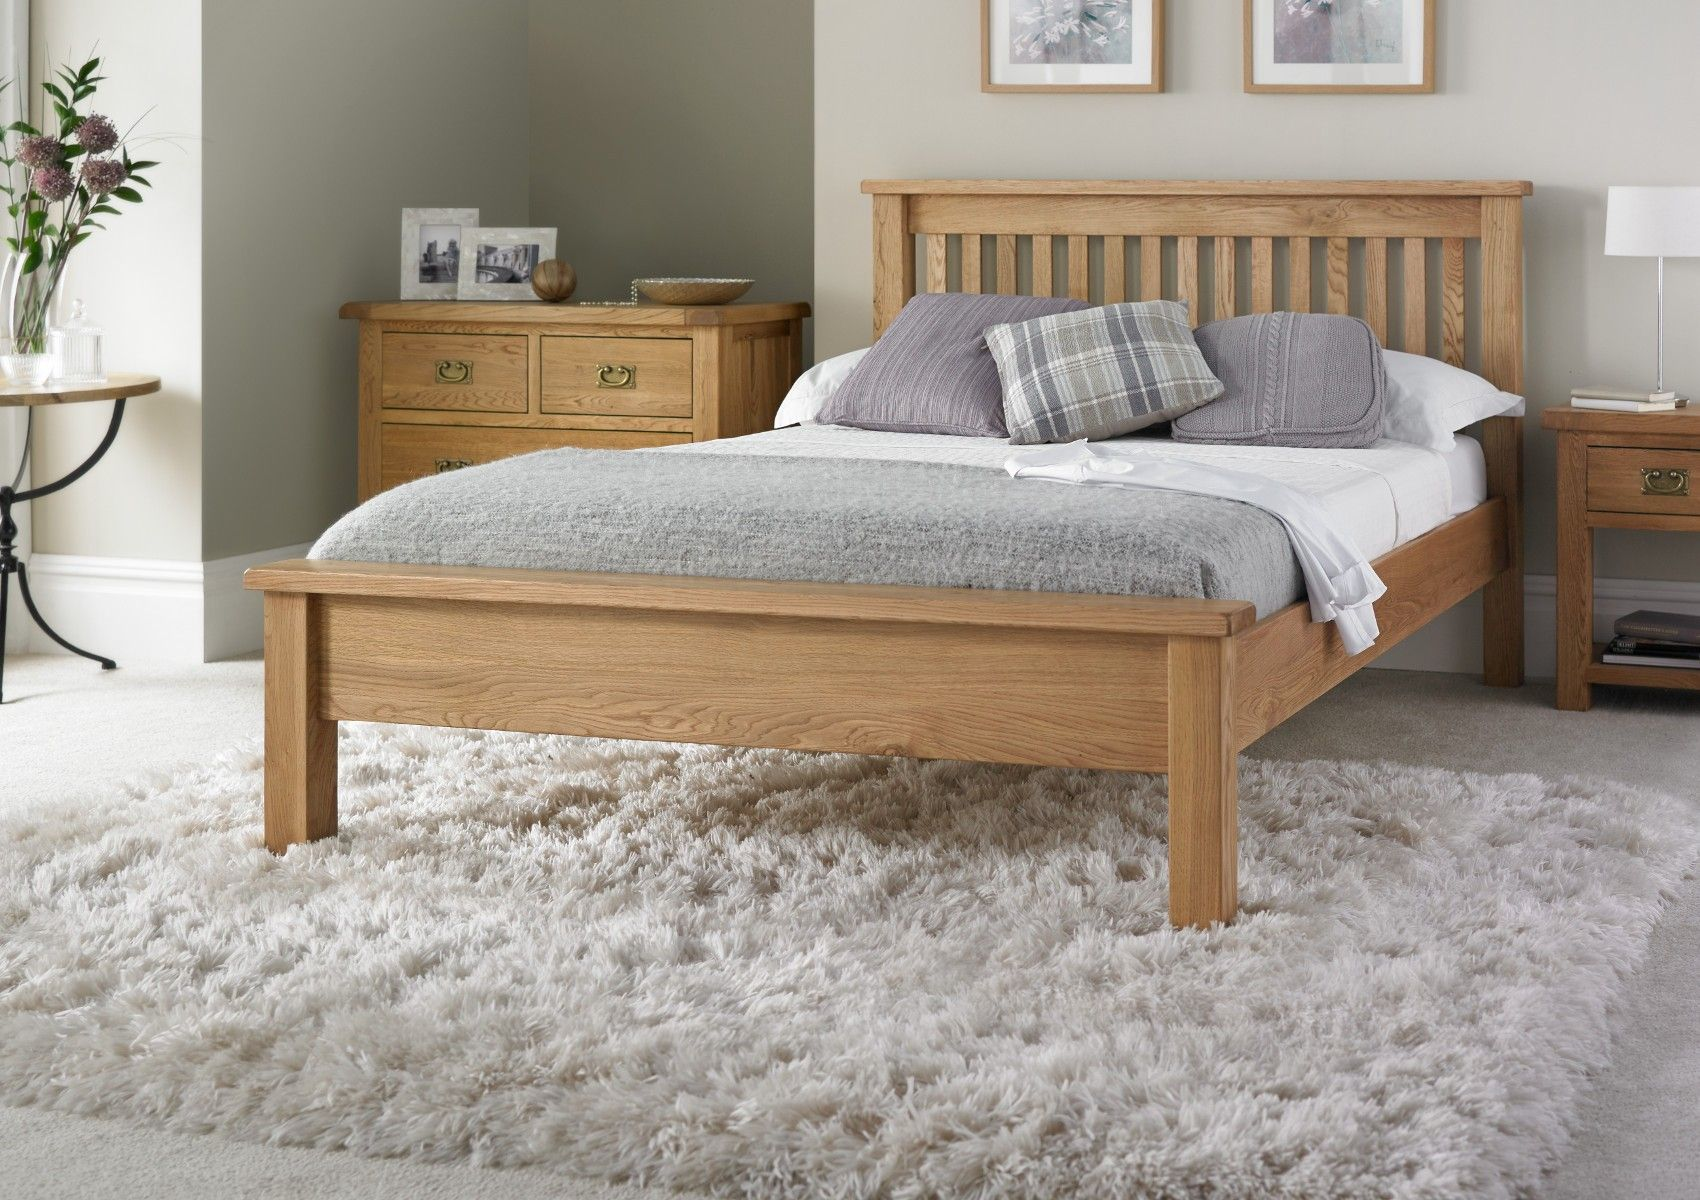 Enjoy The Natural Beauty Of Oak With Our New Heritage Oak Collection A Truly Versatile Range That Will Work Oak Bedroom Furniture Oak Bedroom Wooden Bedroom